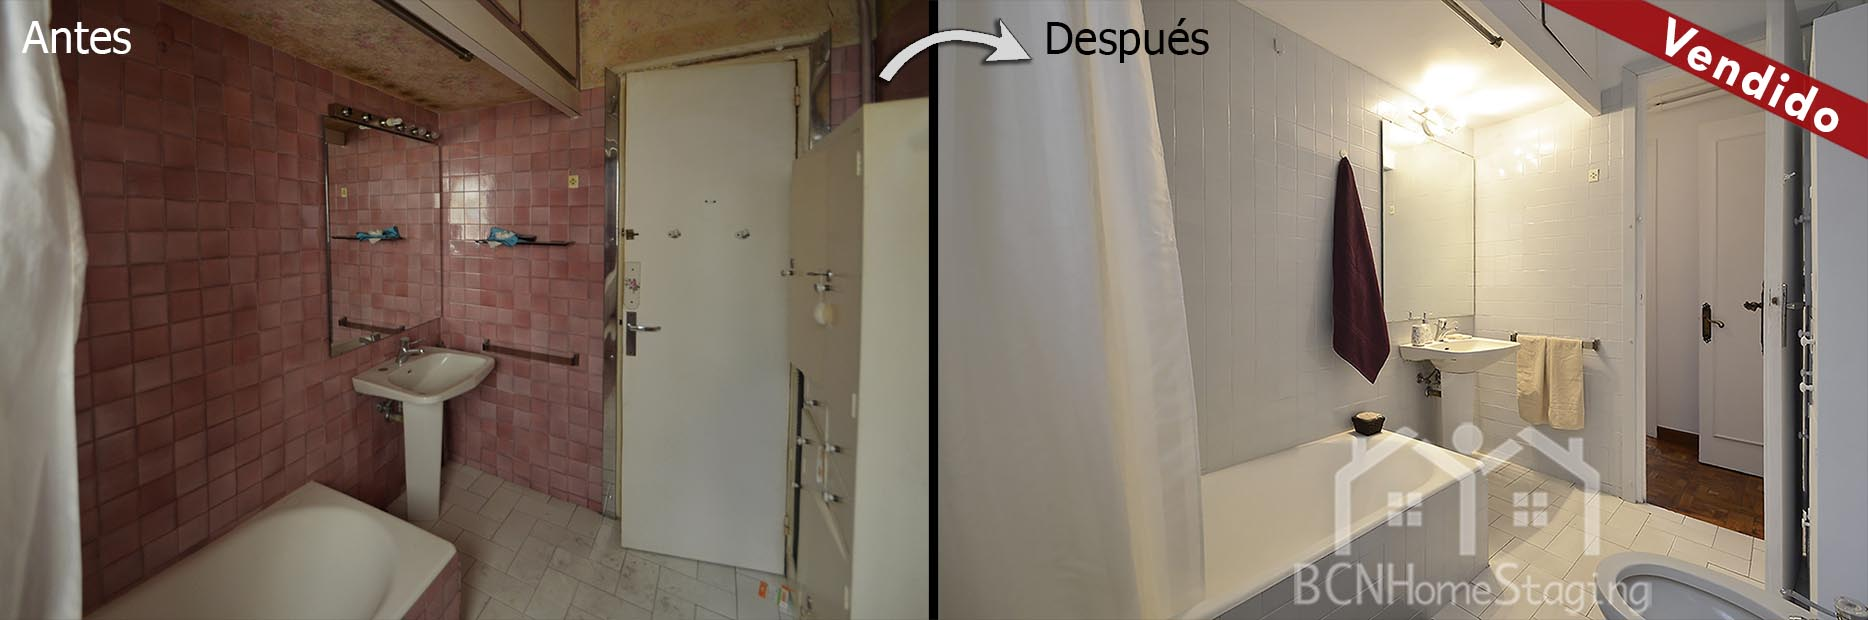 home-staging-barcelona-baño-antes-despues